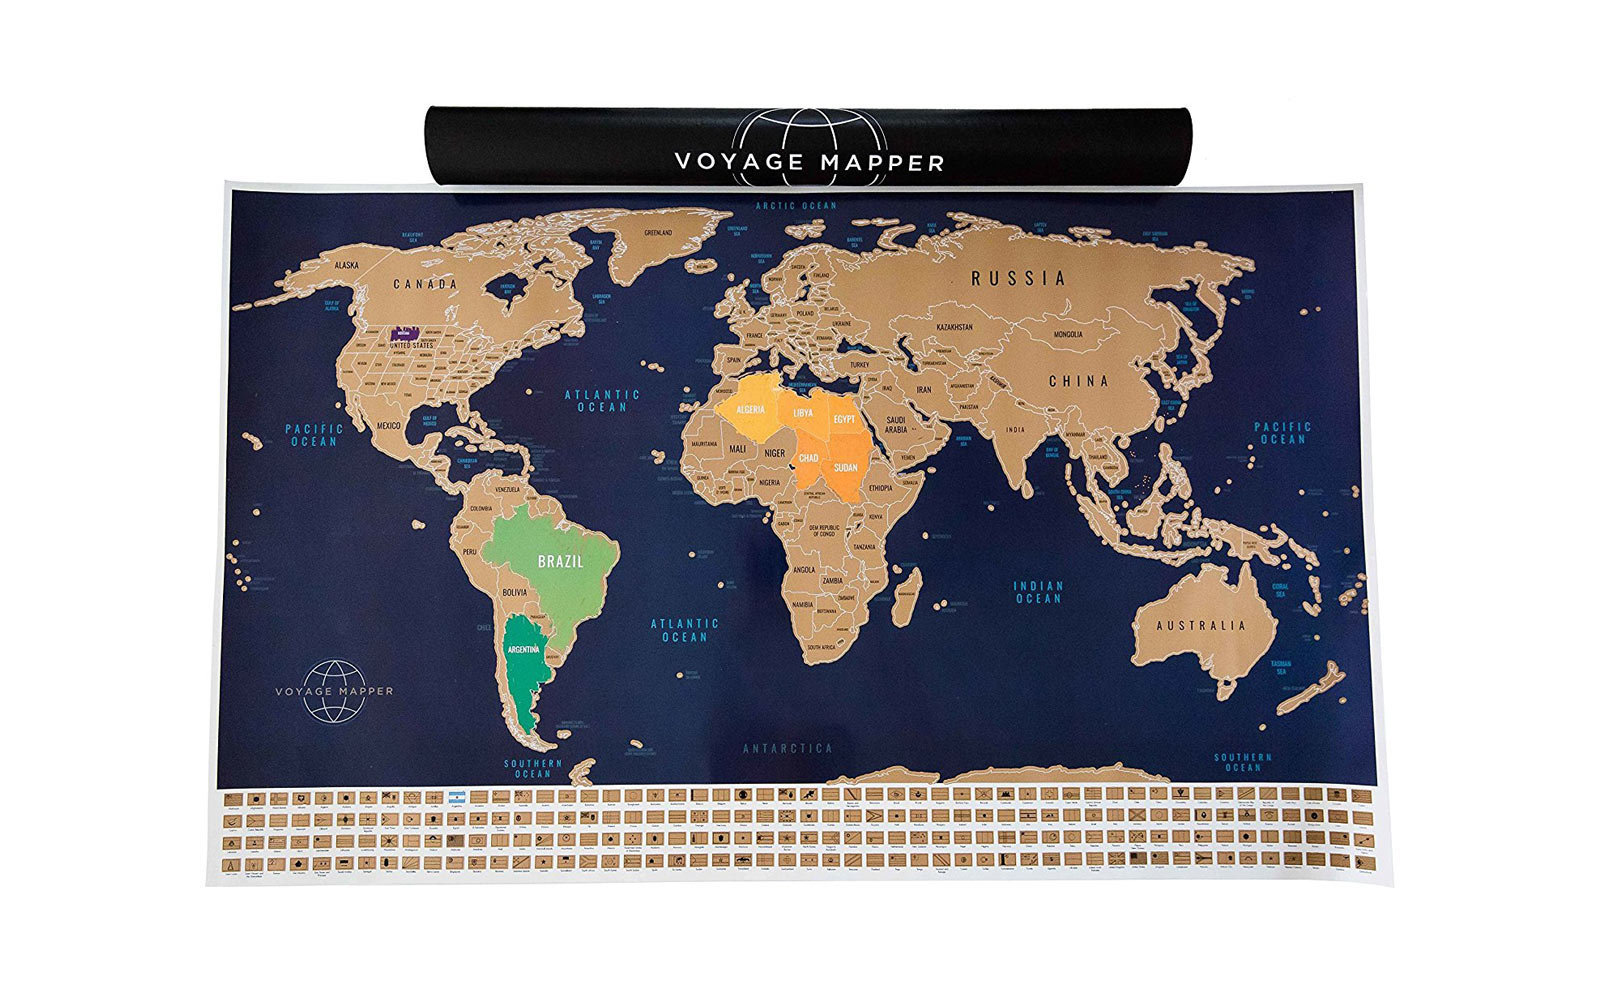 12 retirement gift ideas travelers will love travel leisure voyage mapper scratch off world map gumiabroncs Gallery